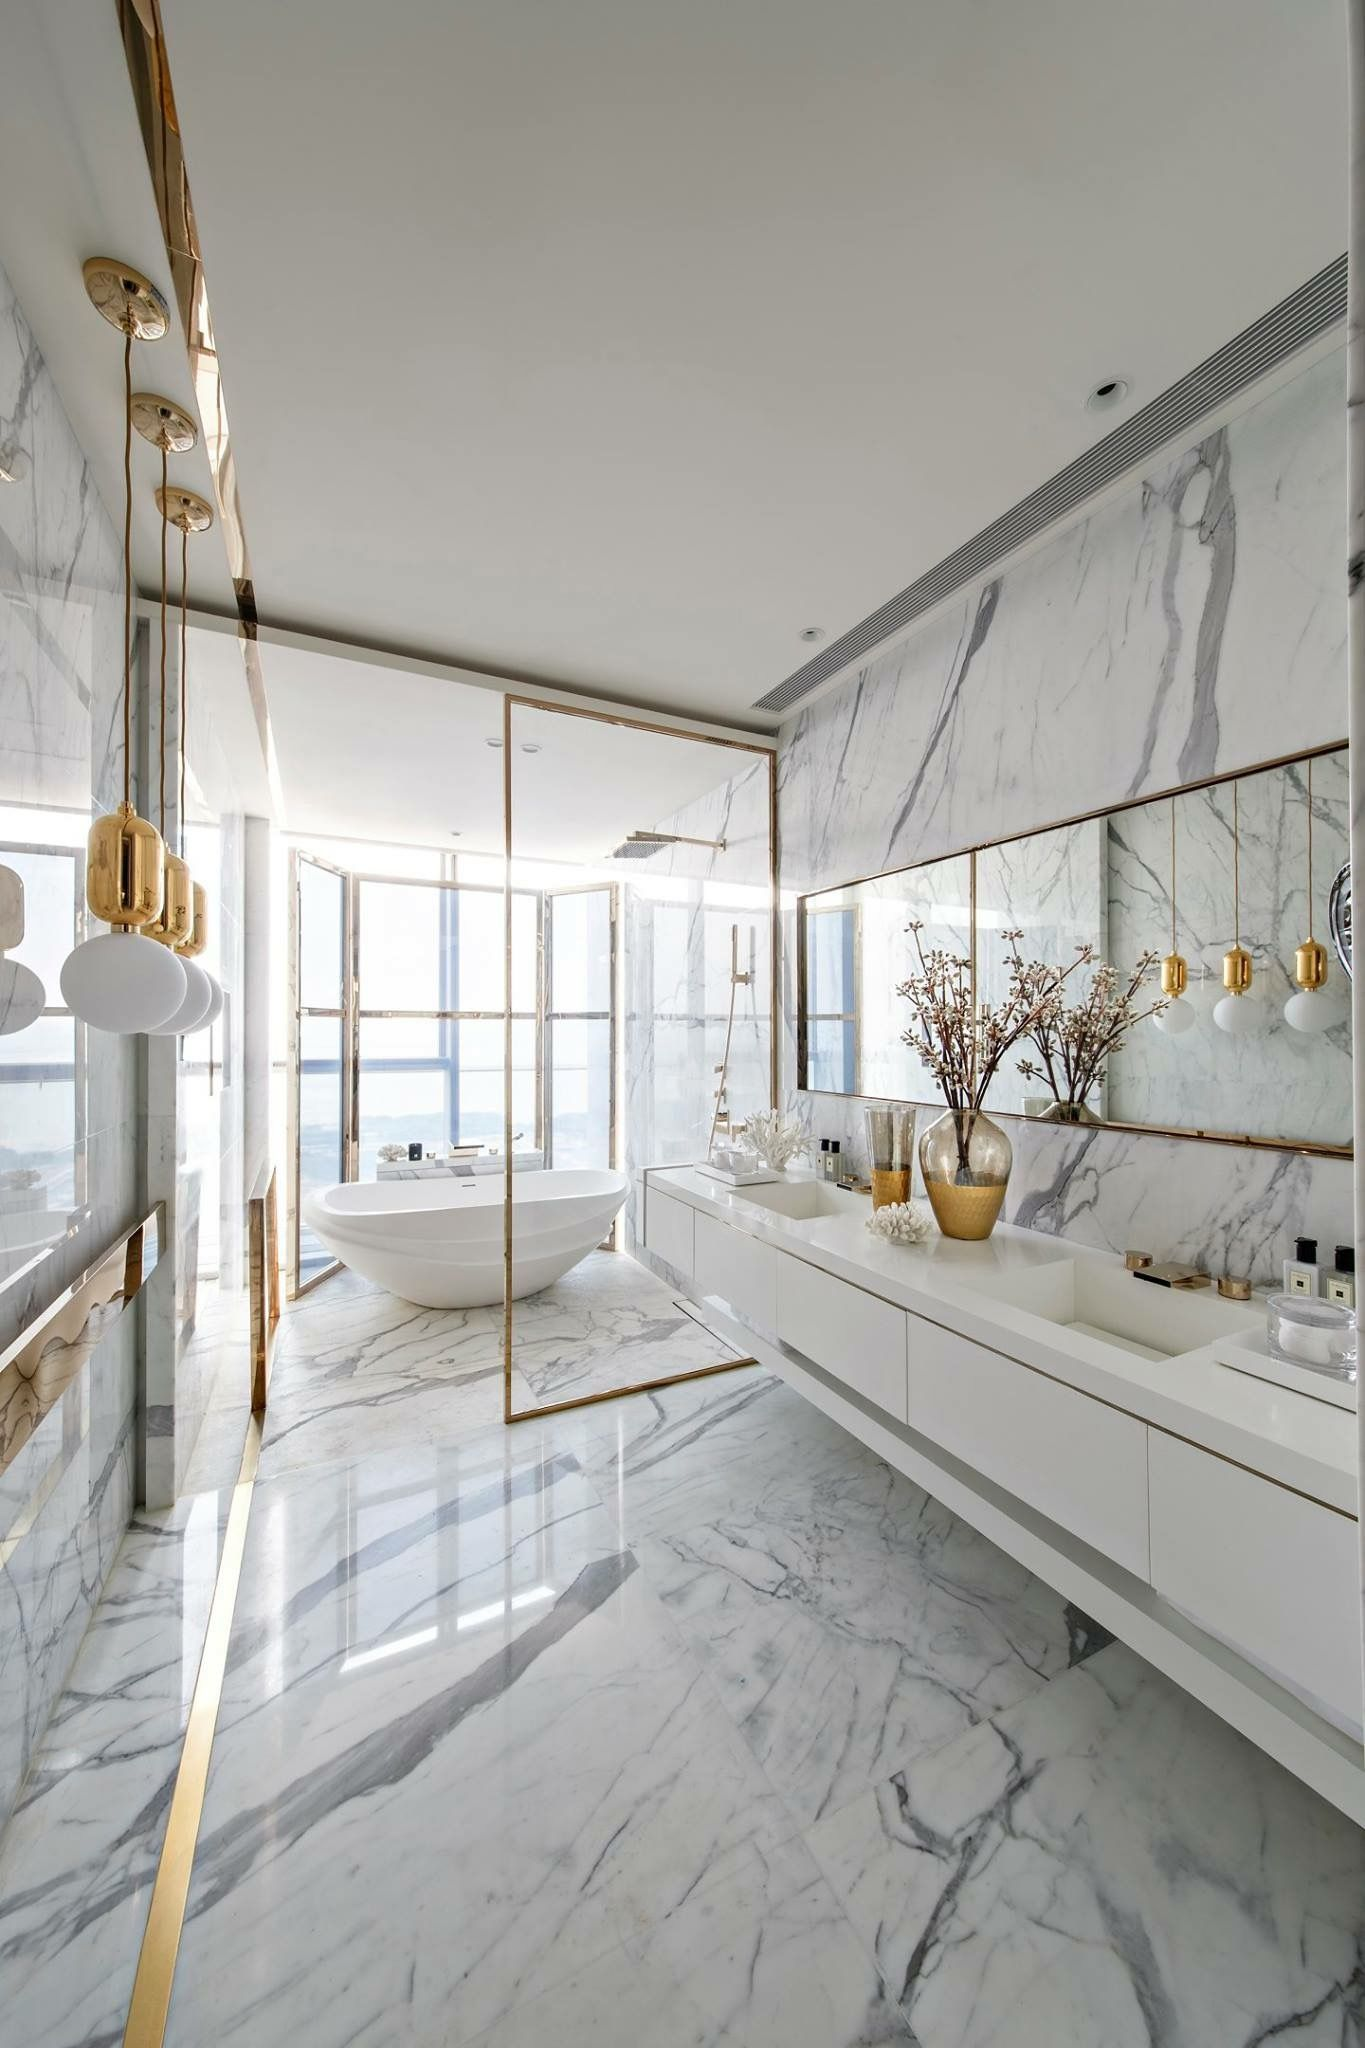 Modish Bathroom Lighting Ideas With Modern Concept: Trendy Materials For Luxury Bathroom Decor Ideas You Must